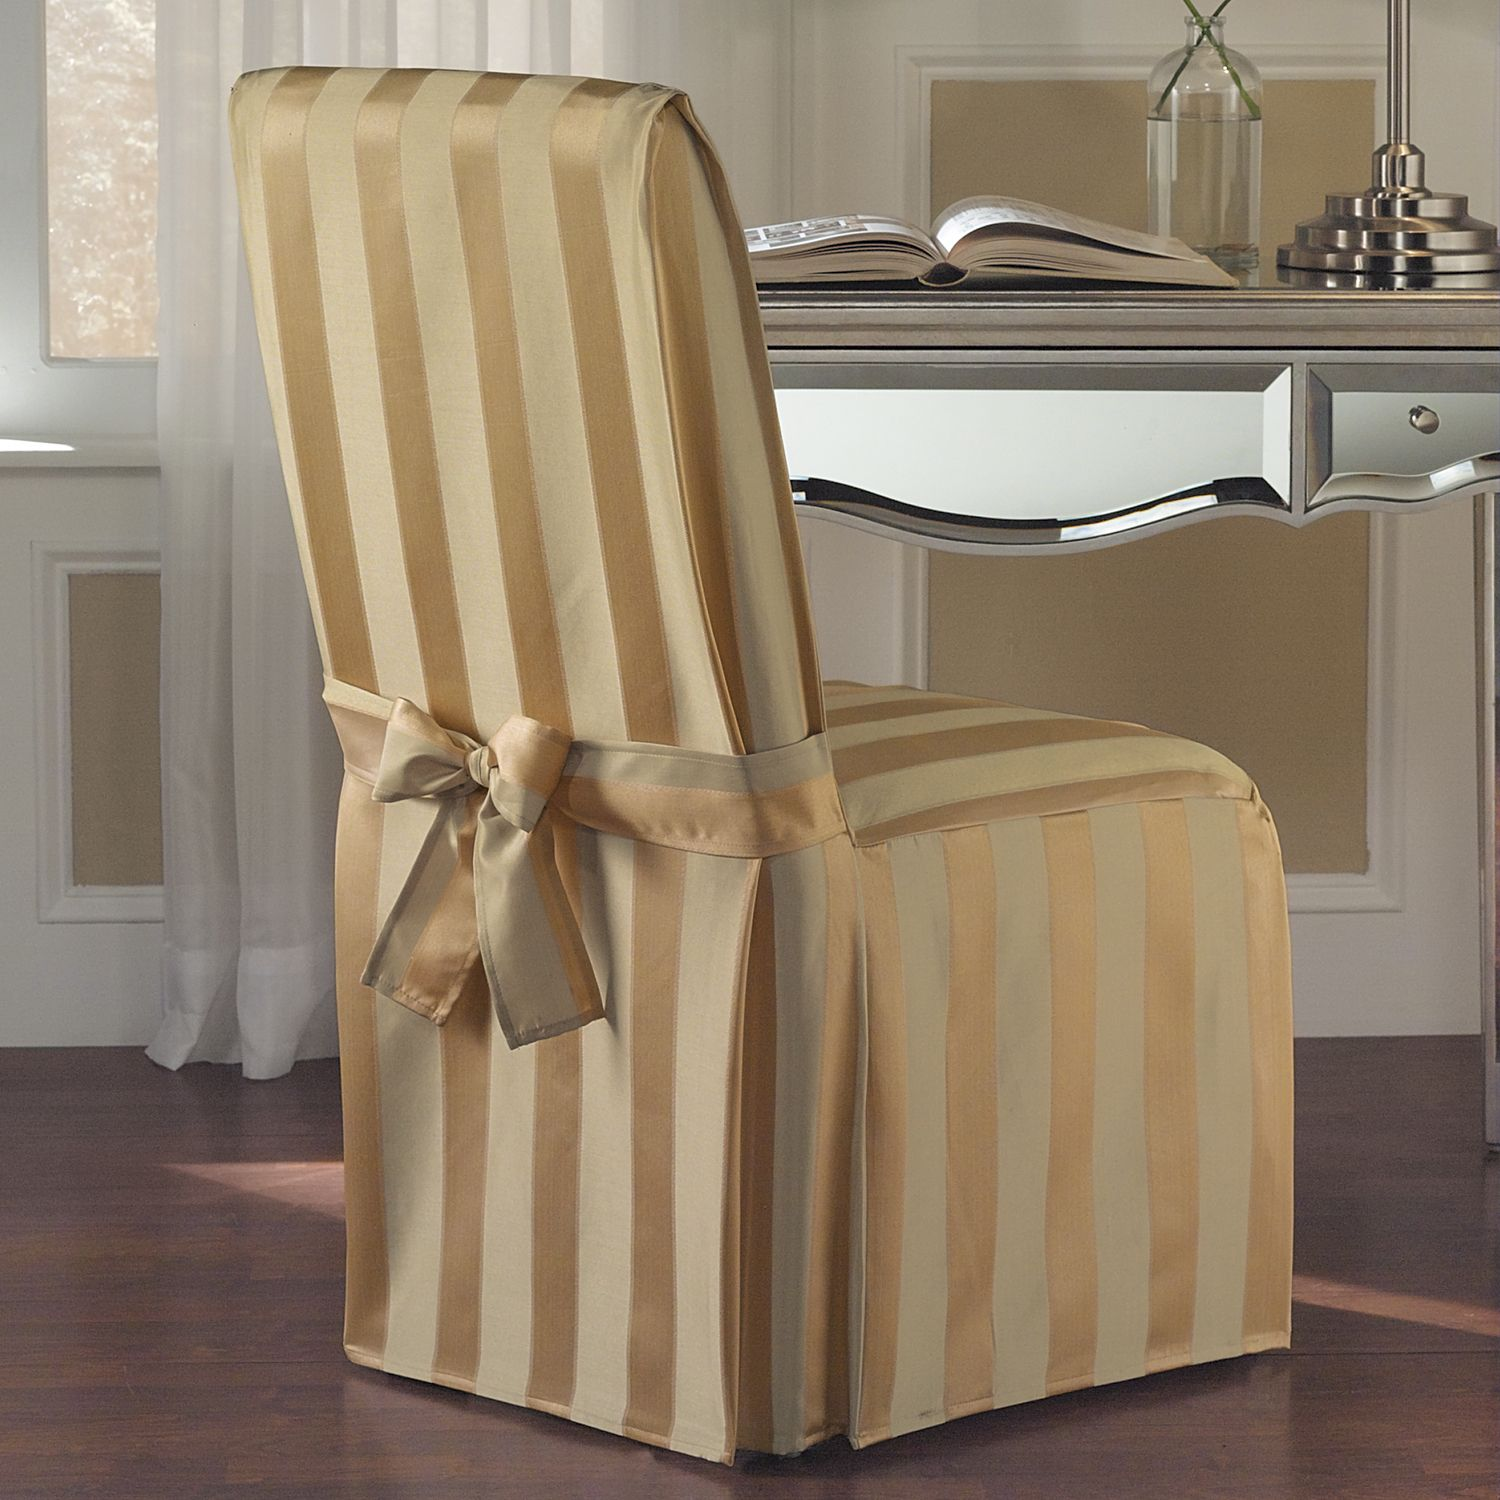 striped chair covers dining rooms restaurant tables and chairs used luxury collection madison cover natural solid gold stripe